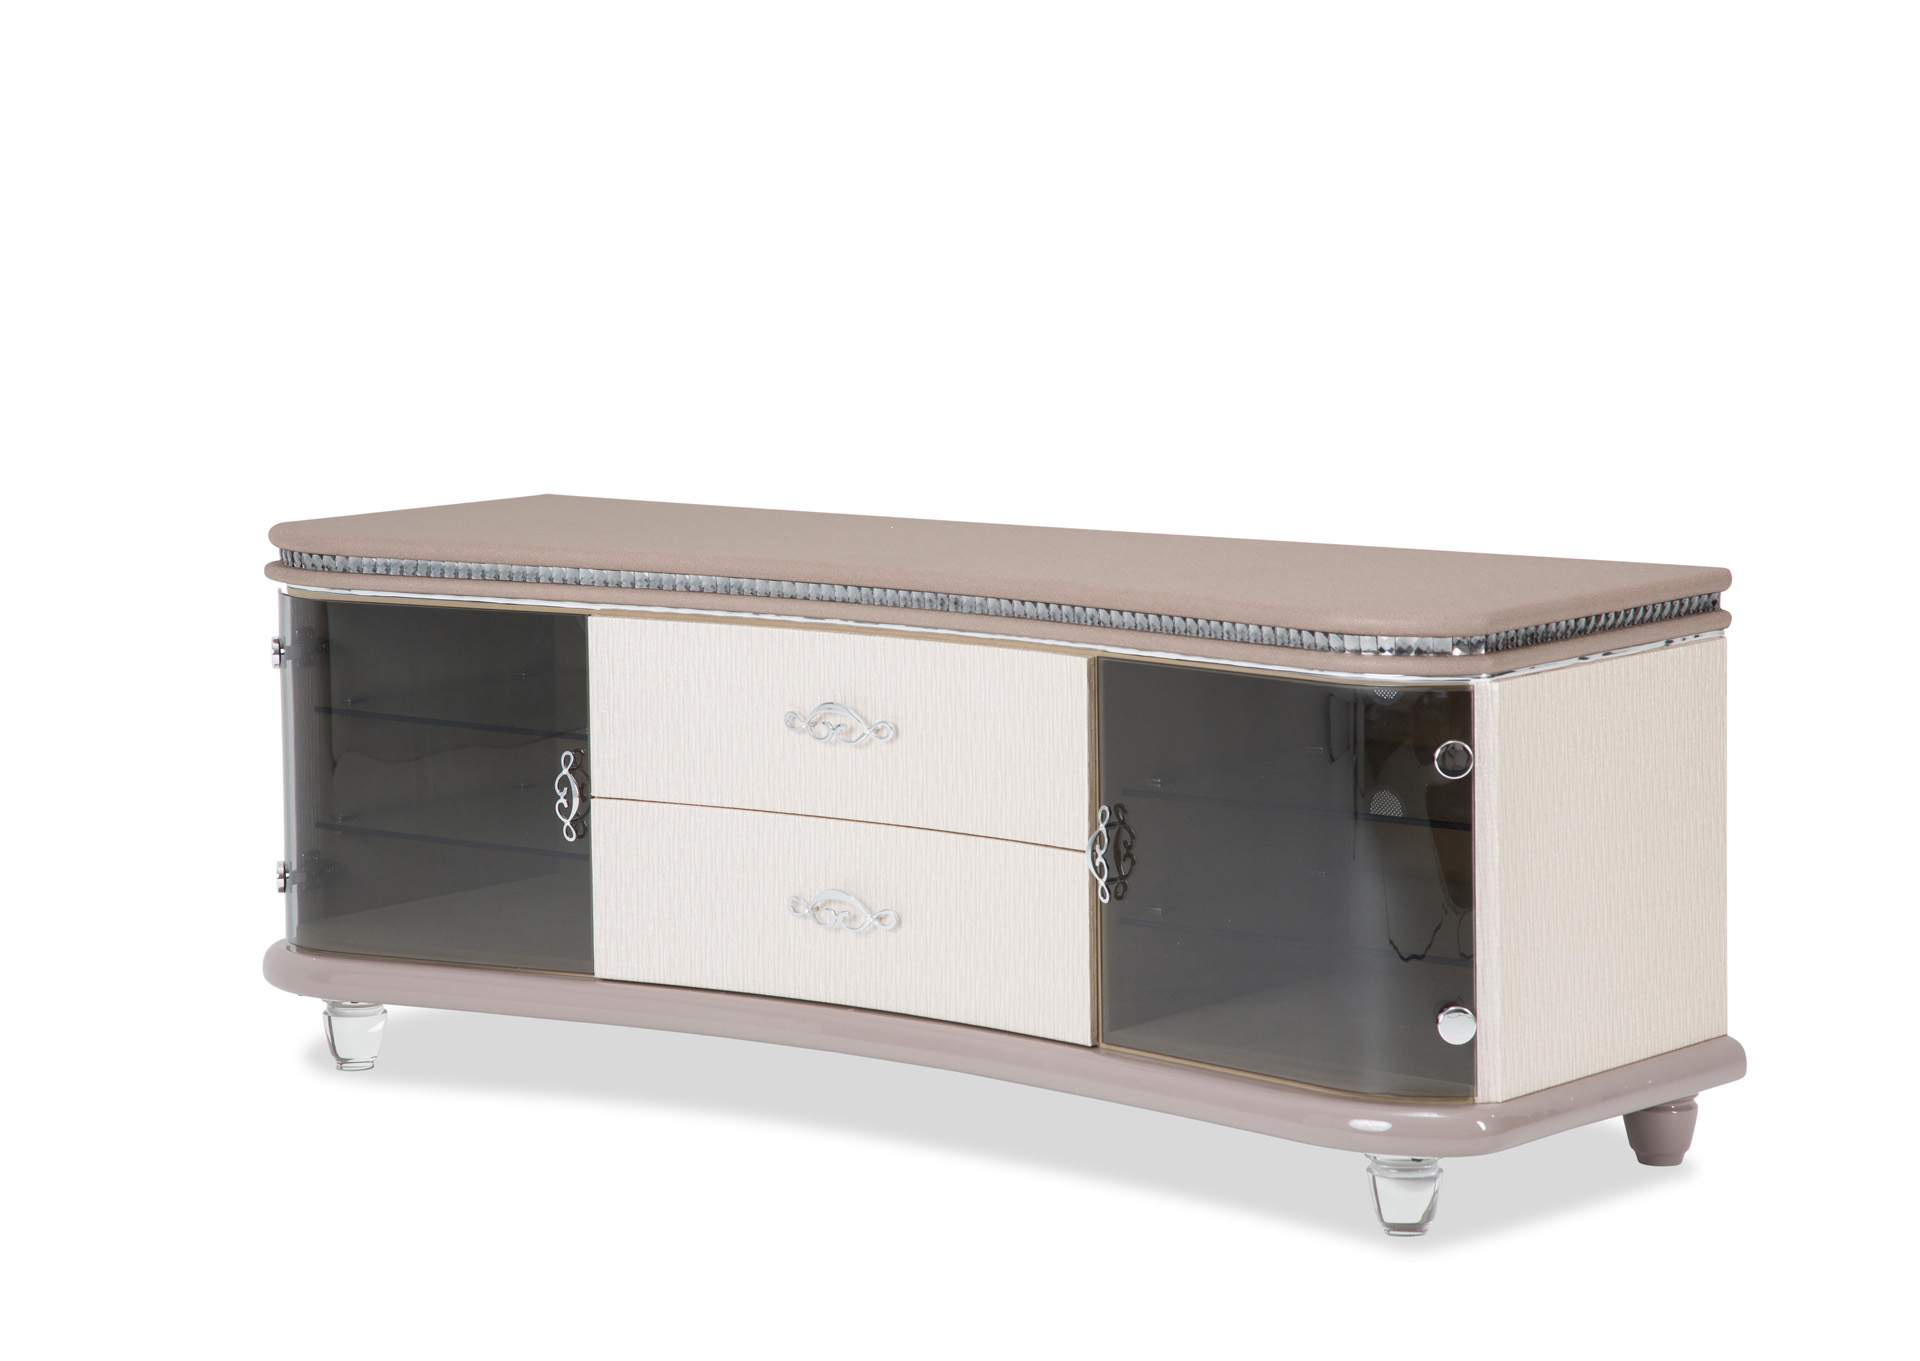 Overture Cristal Entertainment Console w/o Docking Station,AICO